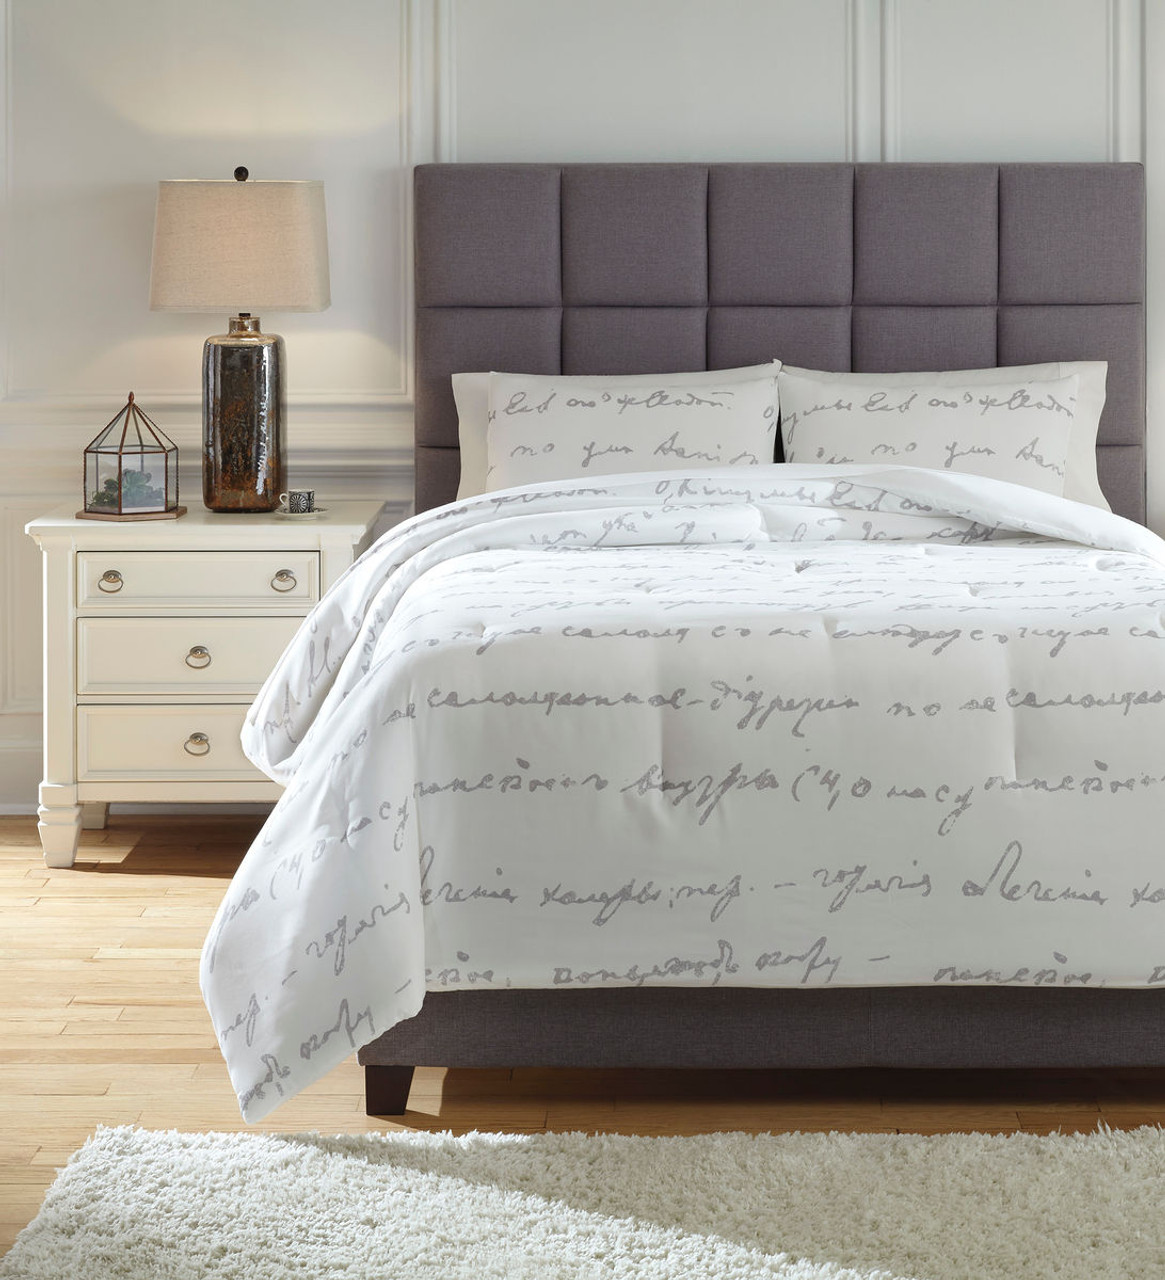 Picture of: The Adrianna White Gray Queen Comforter Set Available At Discount Furniture Center Serving South Hill And Farmville Va